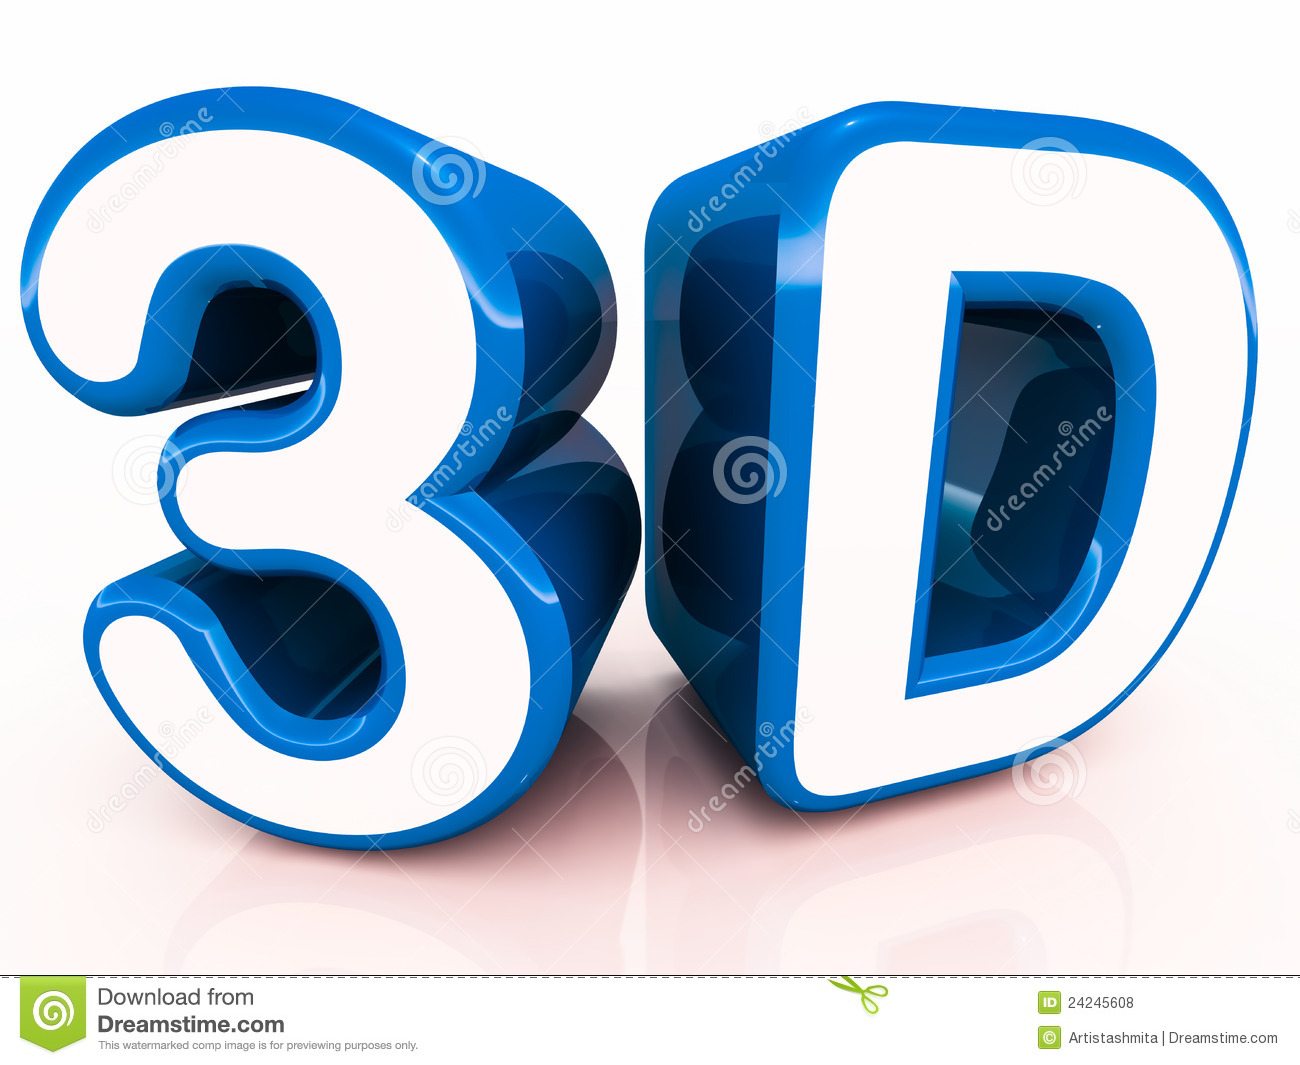 Https Www Dreamstime Com Royalty Free Stock Photos 3d Words Blue Image24245608